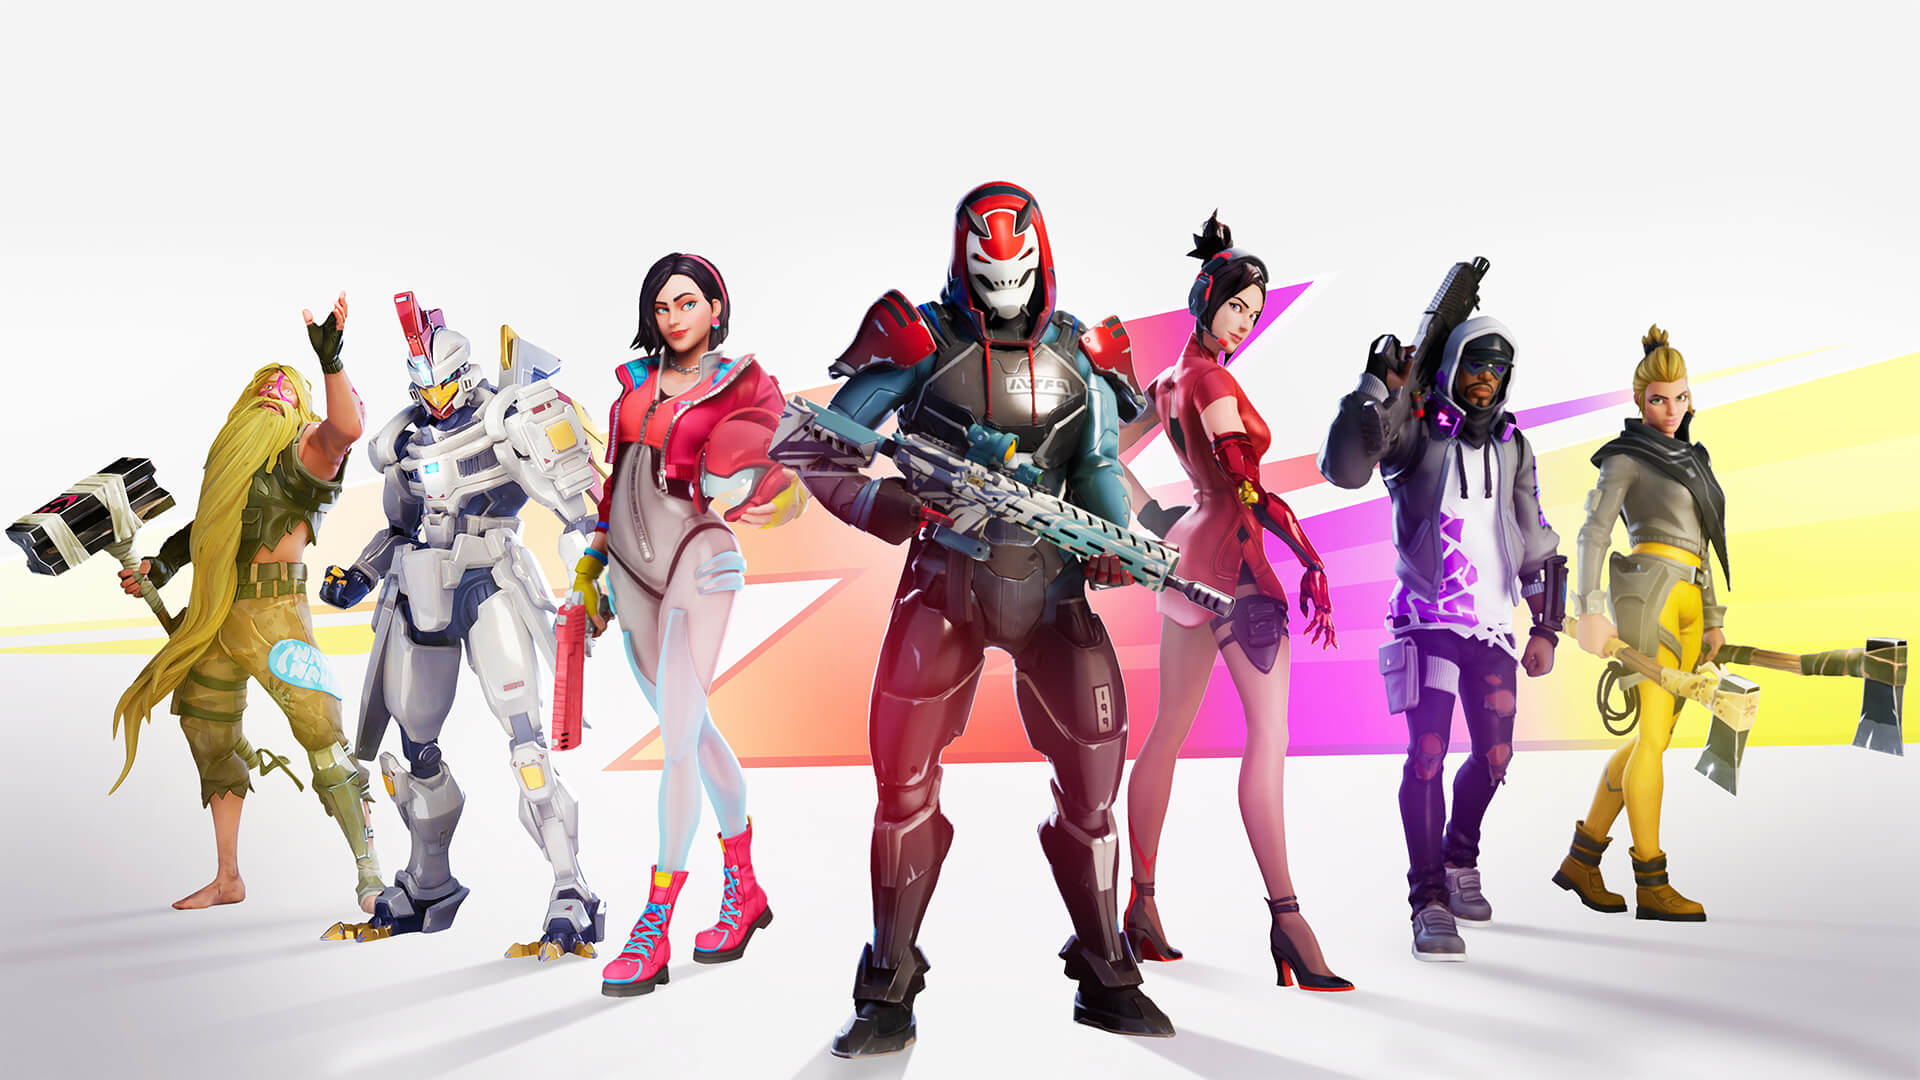 Fortnite Season 9 Promotional Image